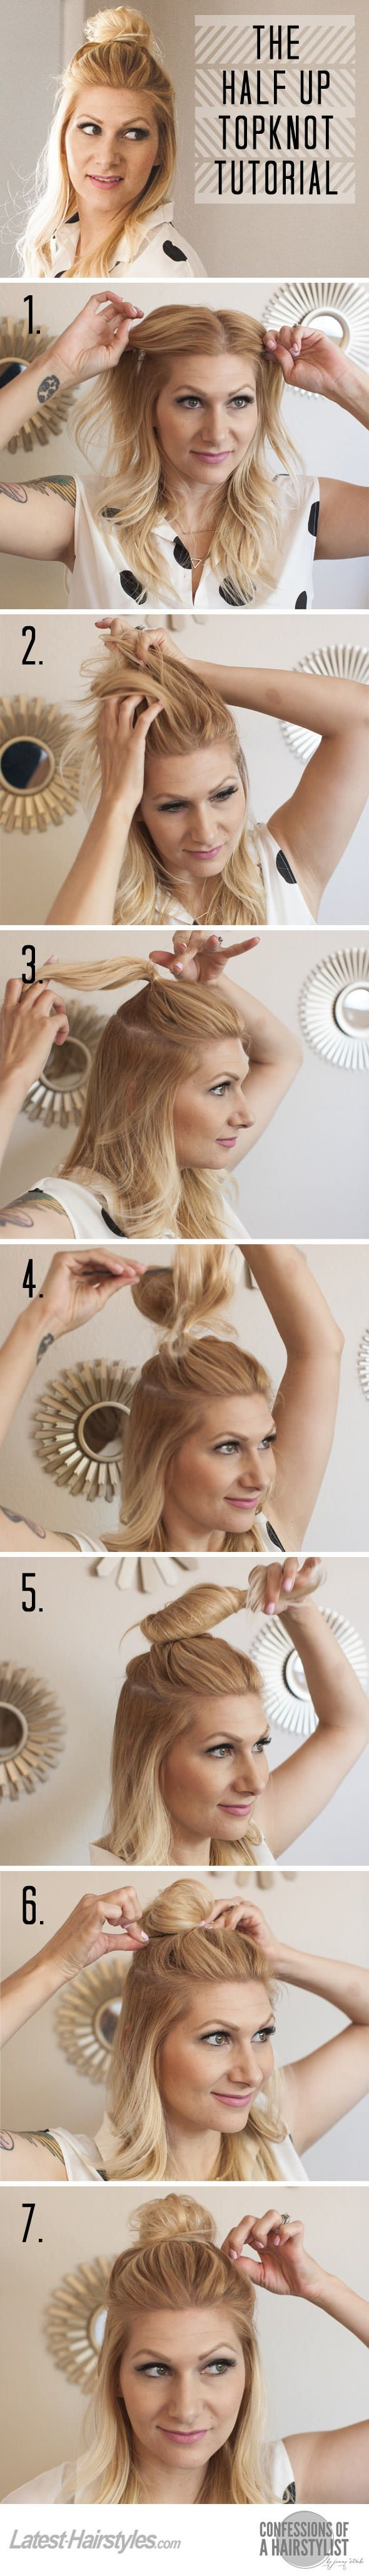 The Half Up Topknot Tutorial